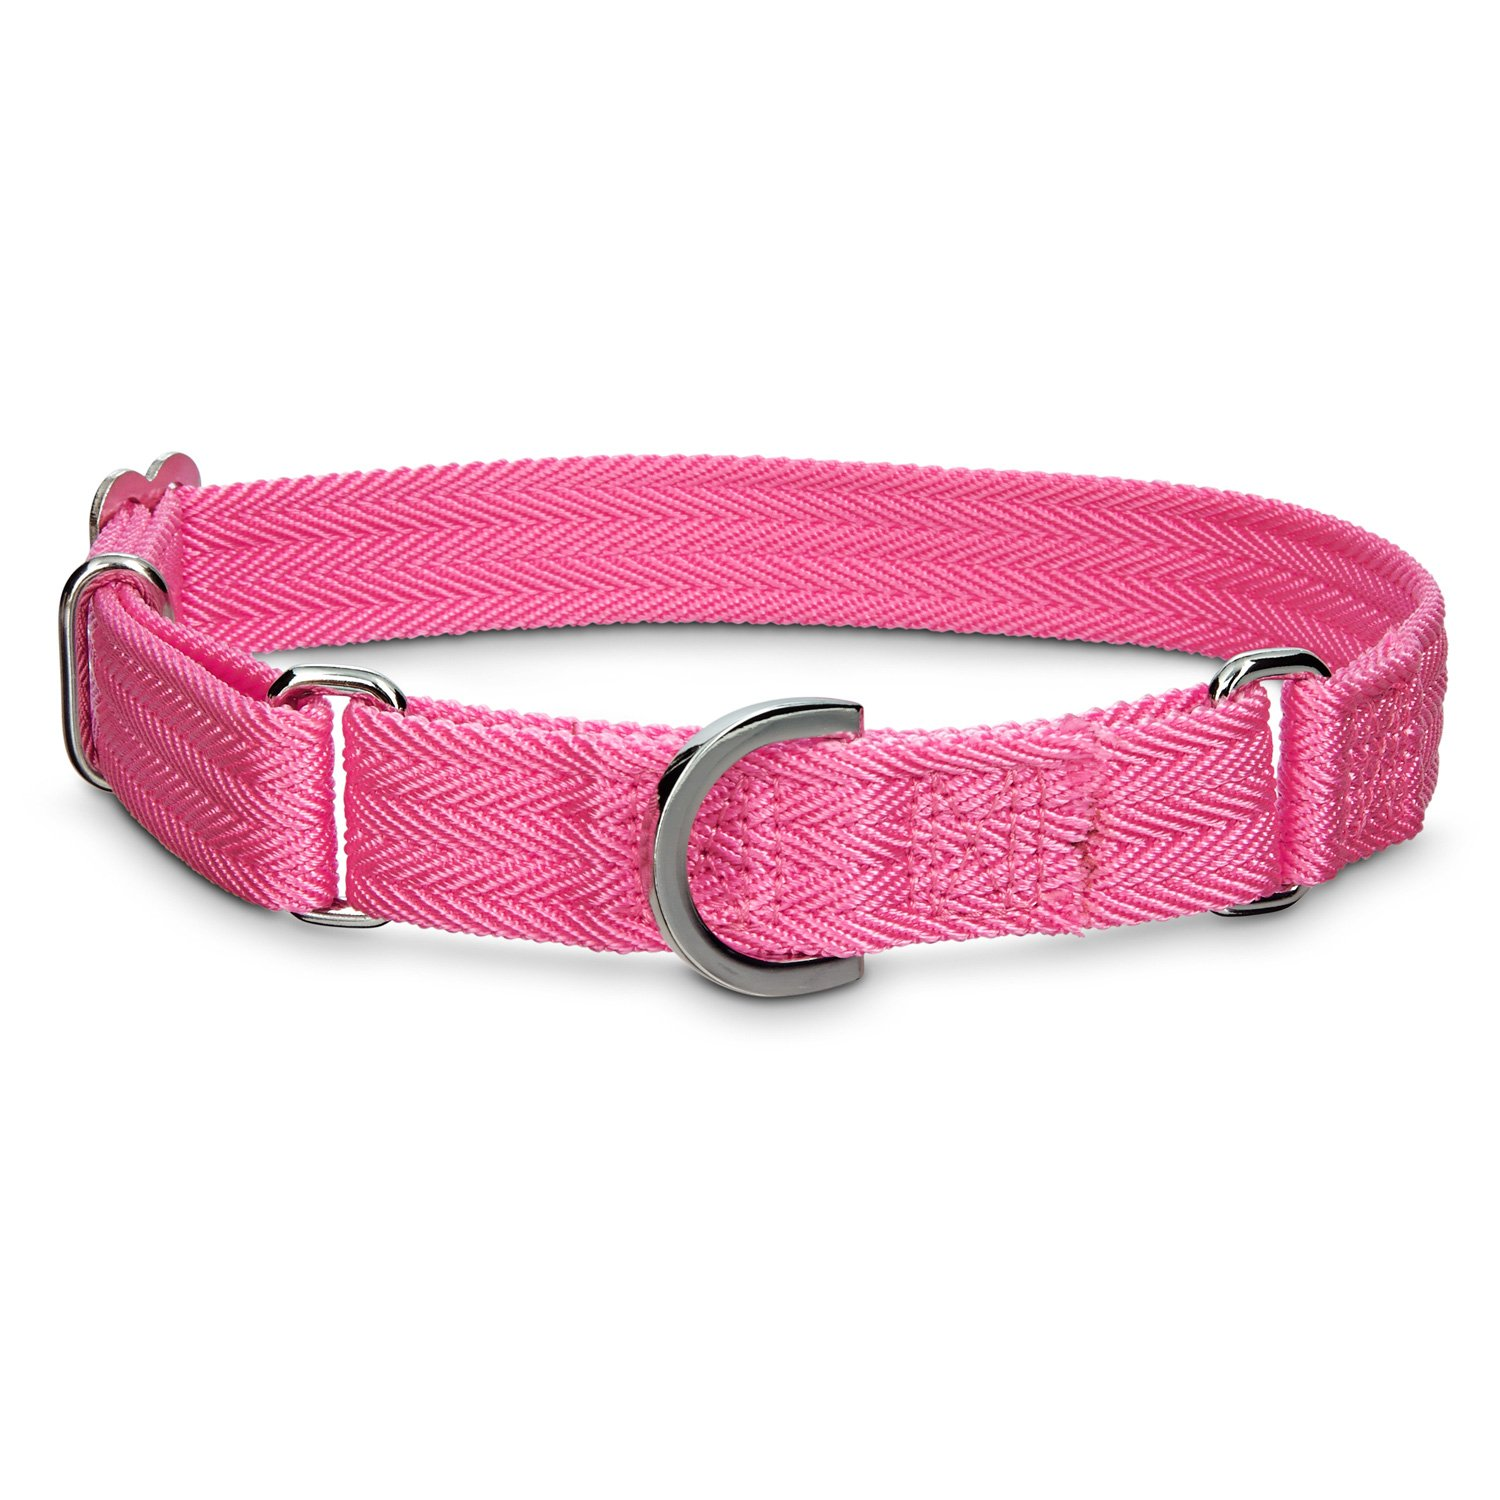 What Is The Price For Dog Collar